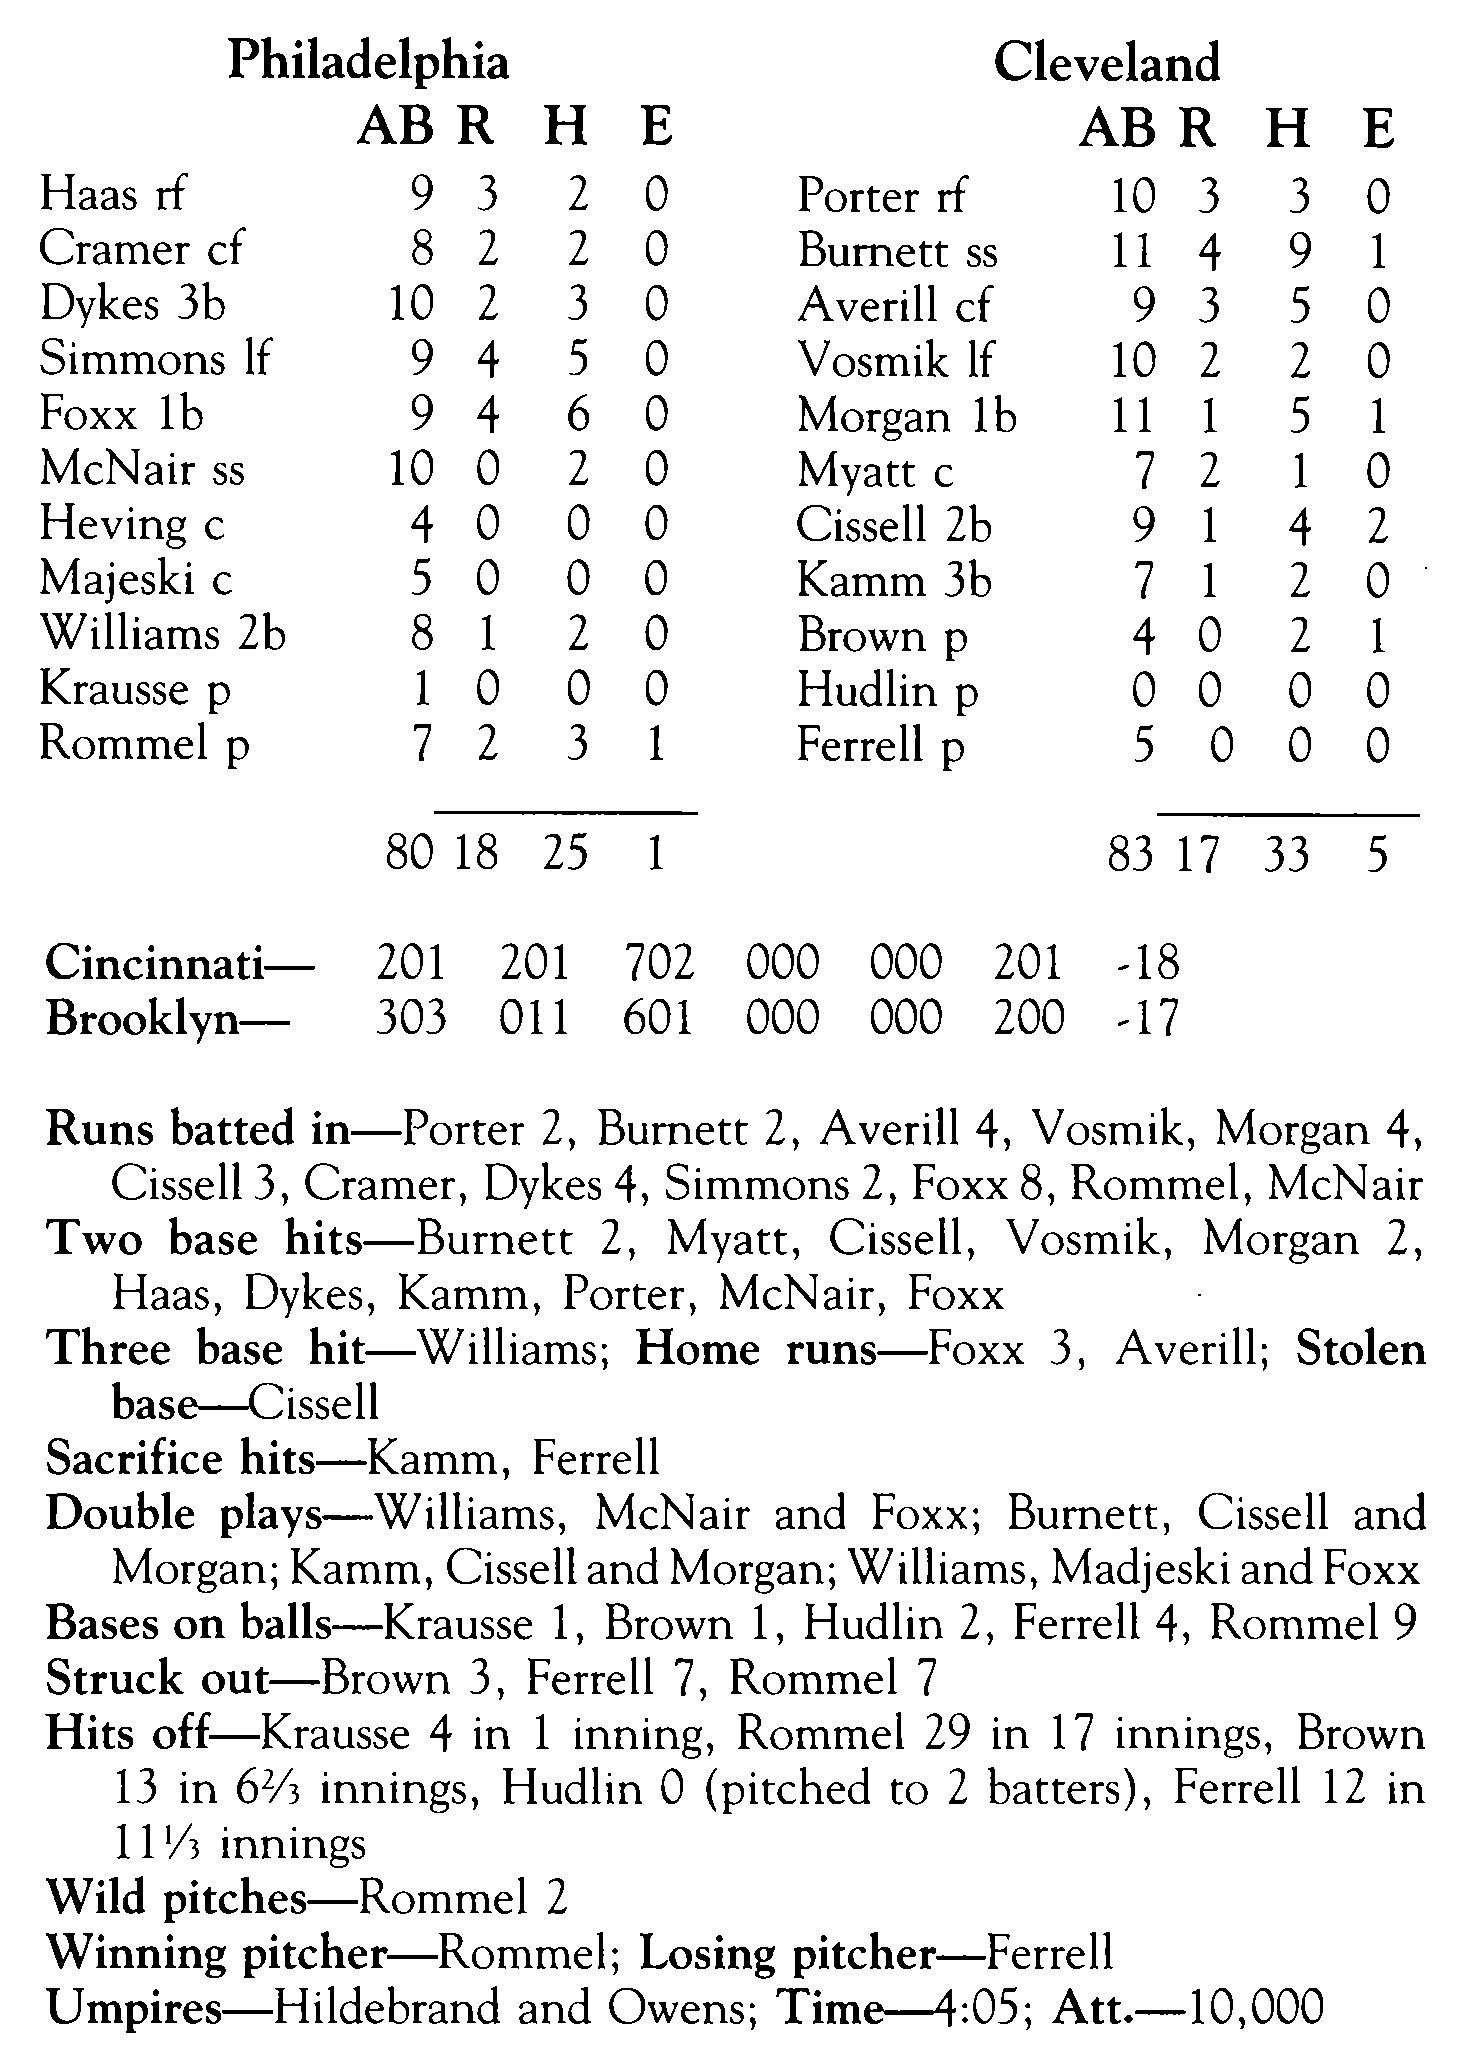 Indians vs. Athletics box score, July 10, 1932